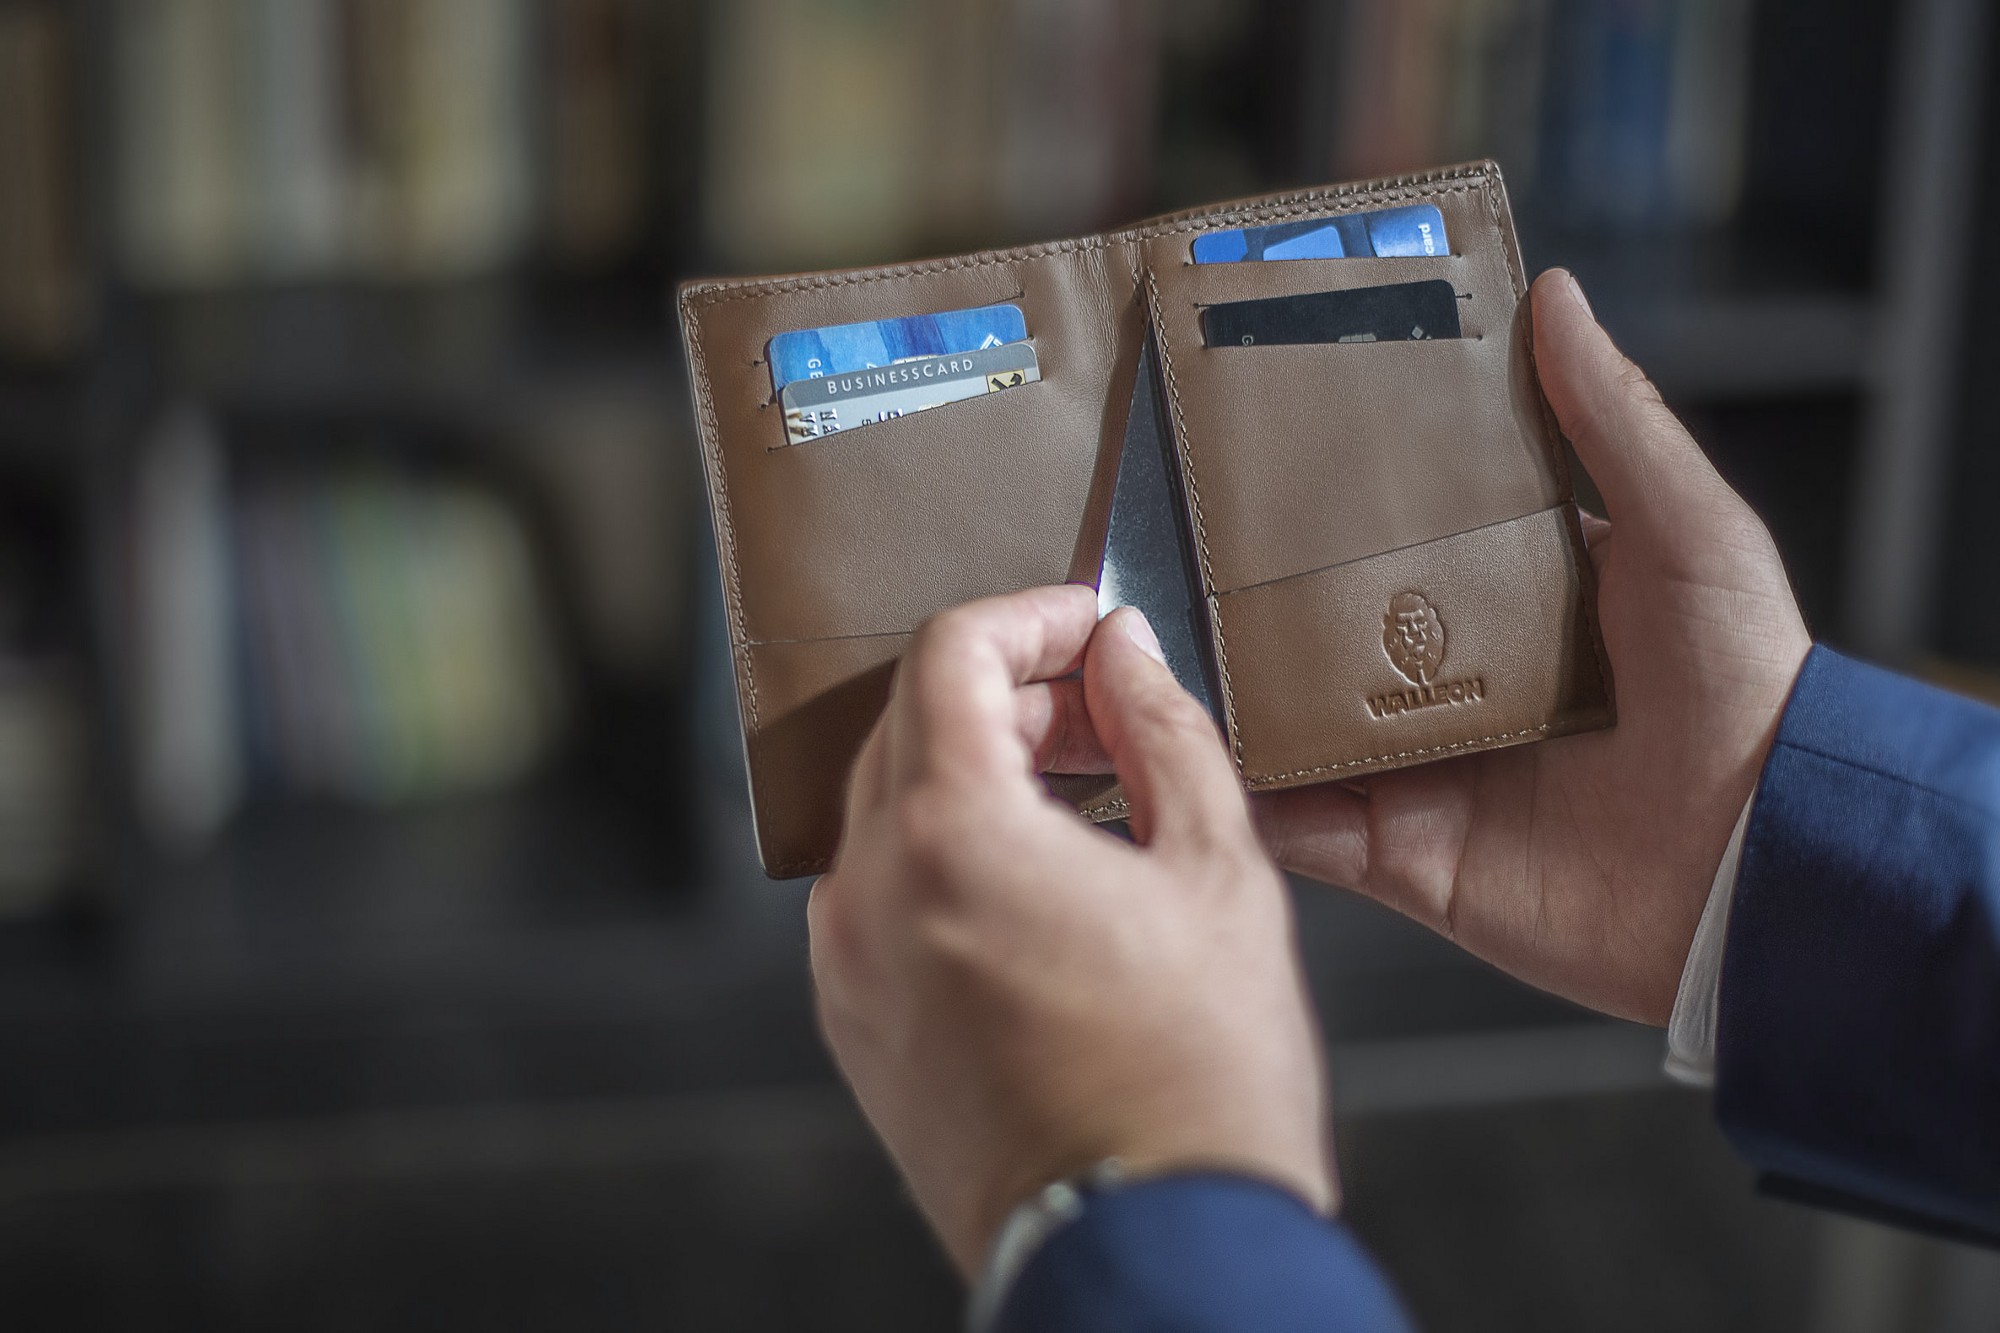 Card being inserted into a wallet.